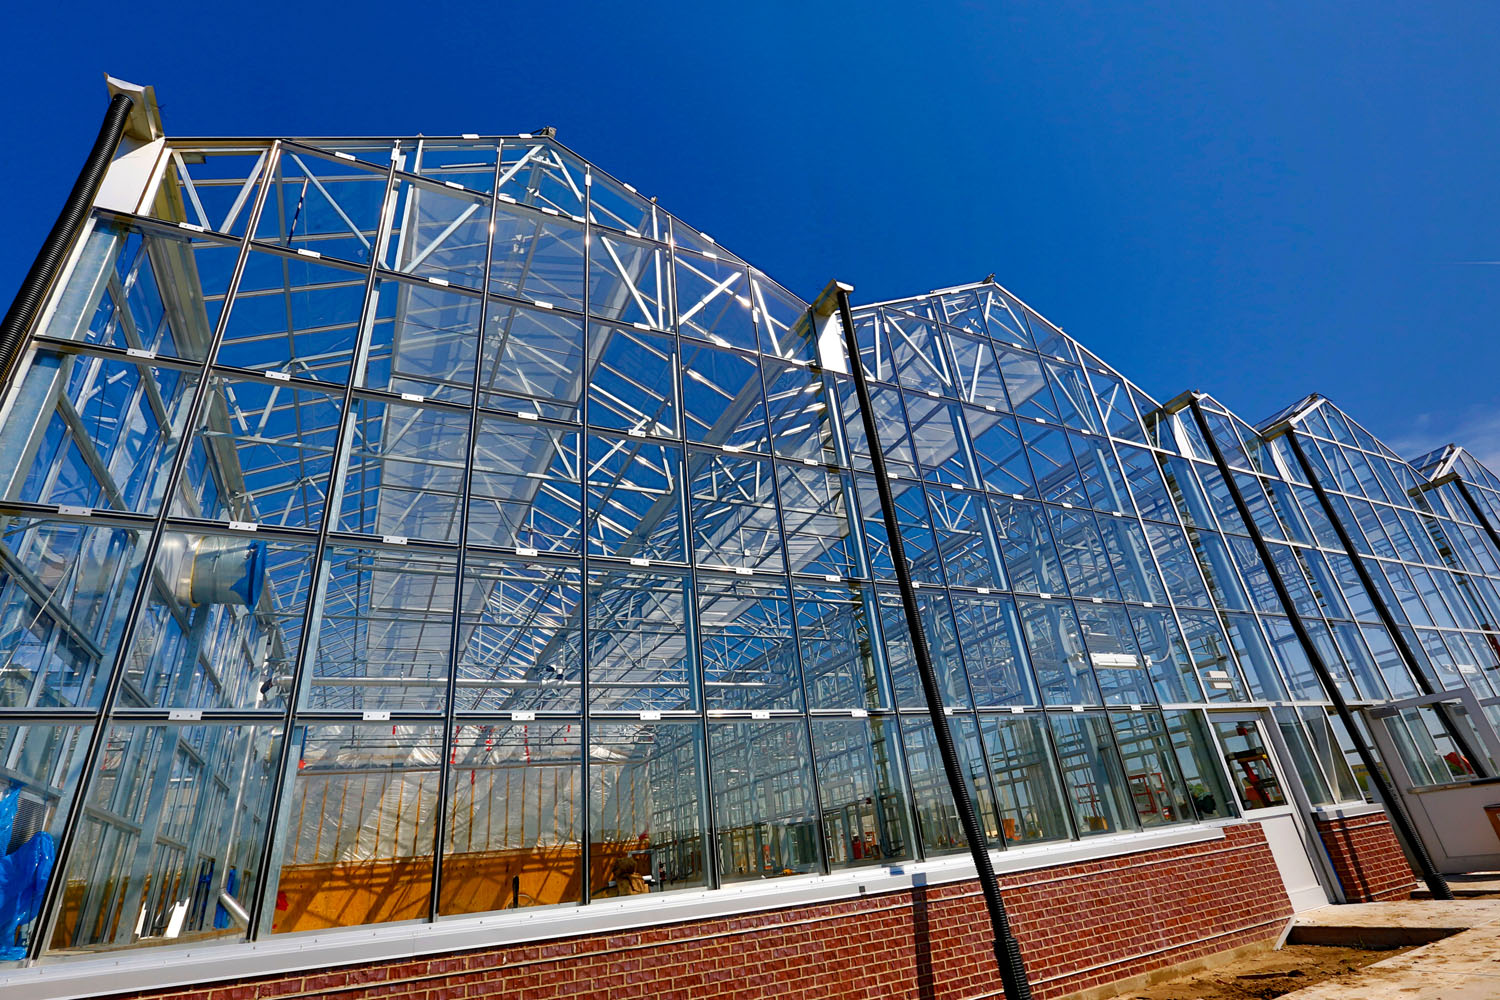 The Greenhouse Innovation Center features 45,950 square feet of greenhouse and headhouse space. The greenhouses are 22 feet tall at the eaves to allow optimal air flow. They are heated and cooled with sustainable energy.